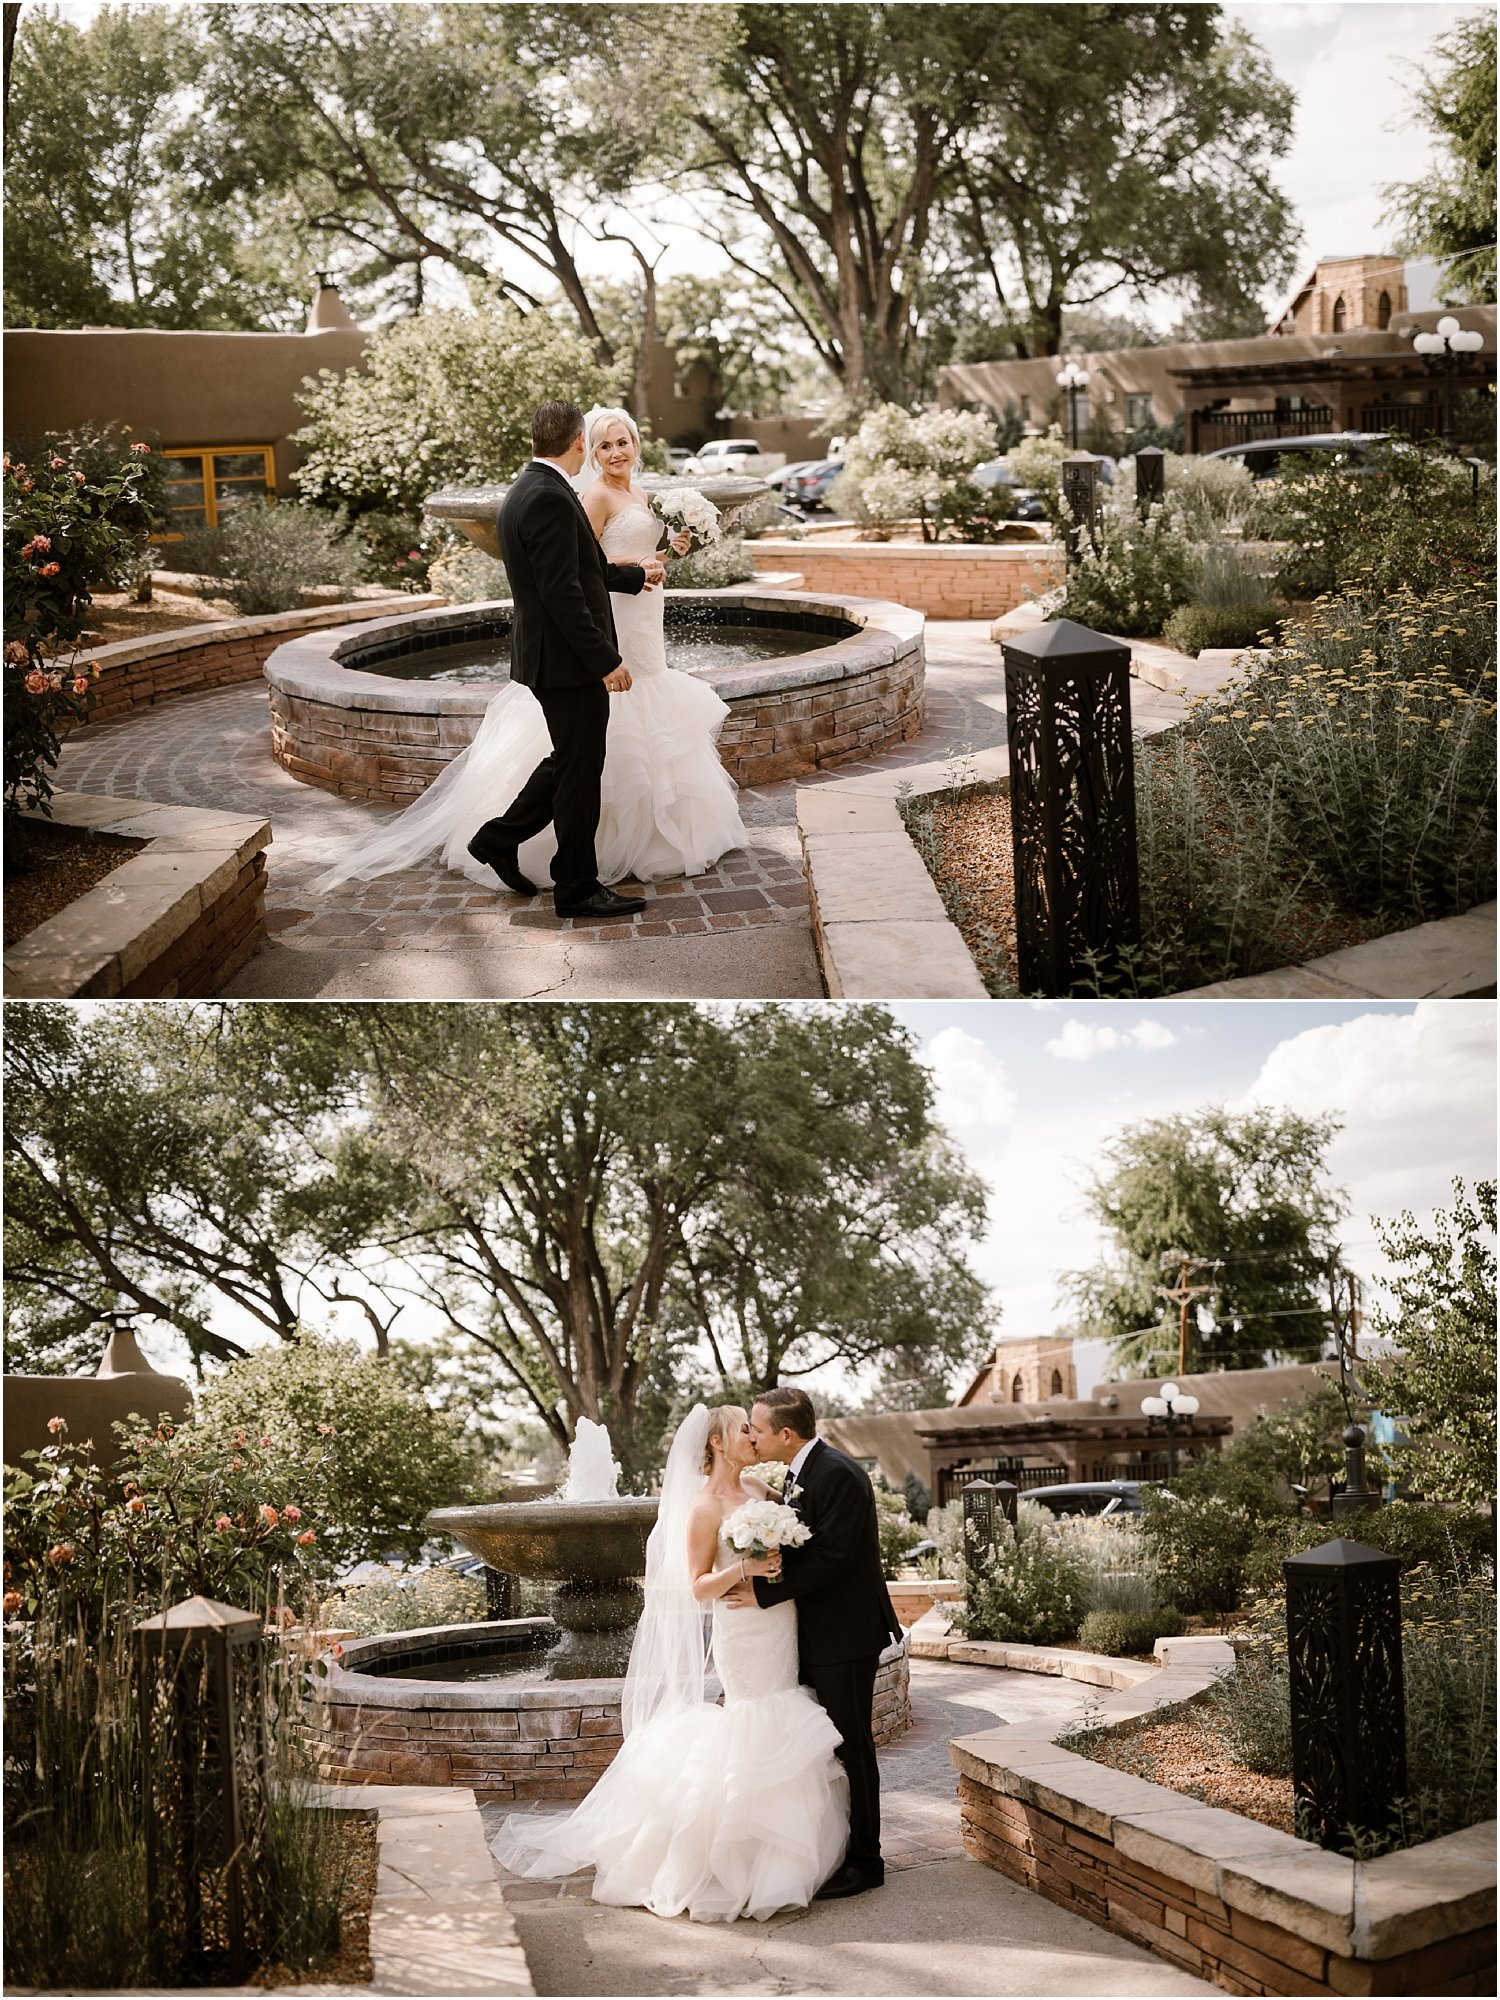 Blue Rose Photography_Sante Fe Photographer_La Posada de Santa Fe, New Mexico_11